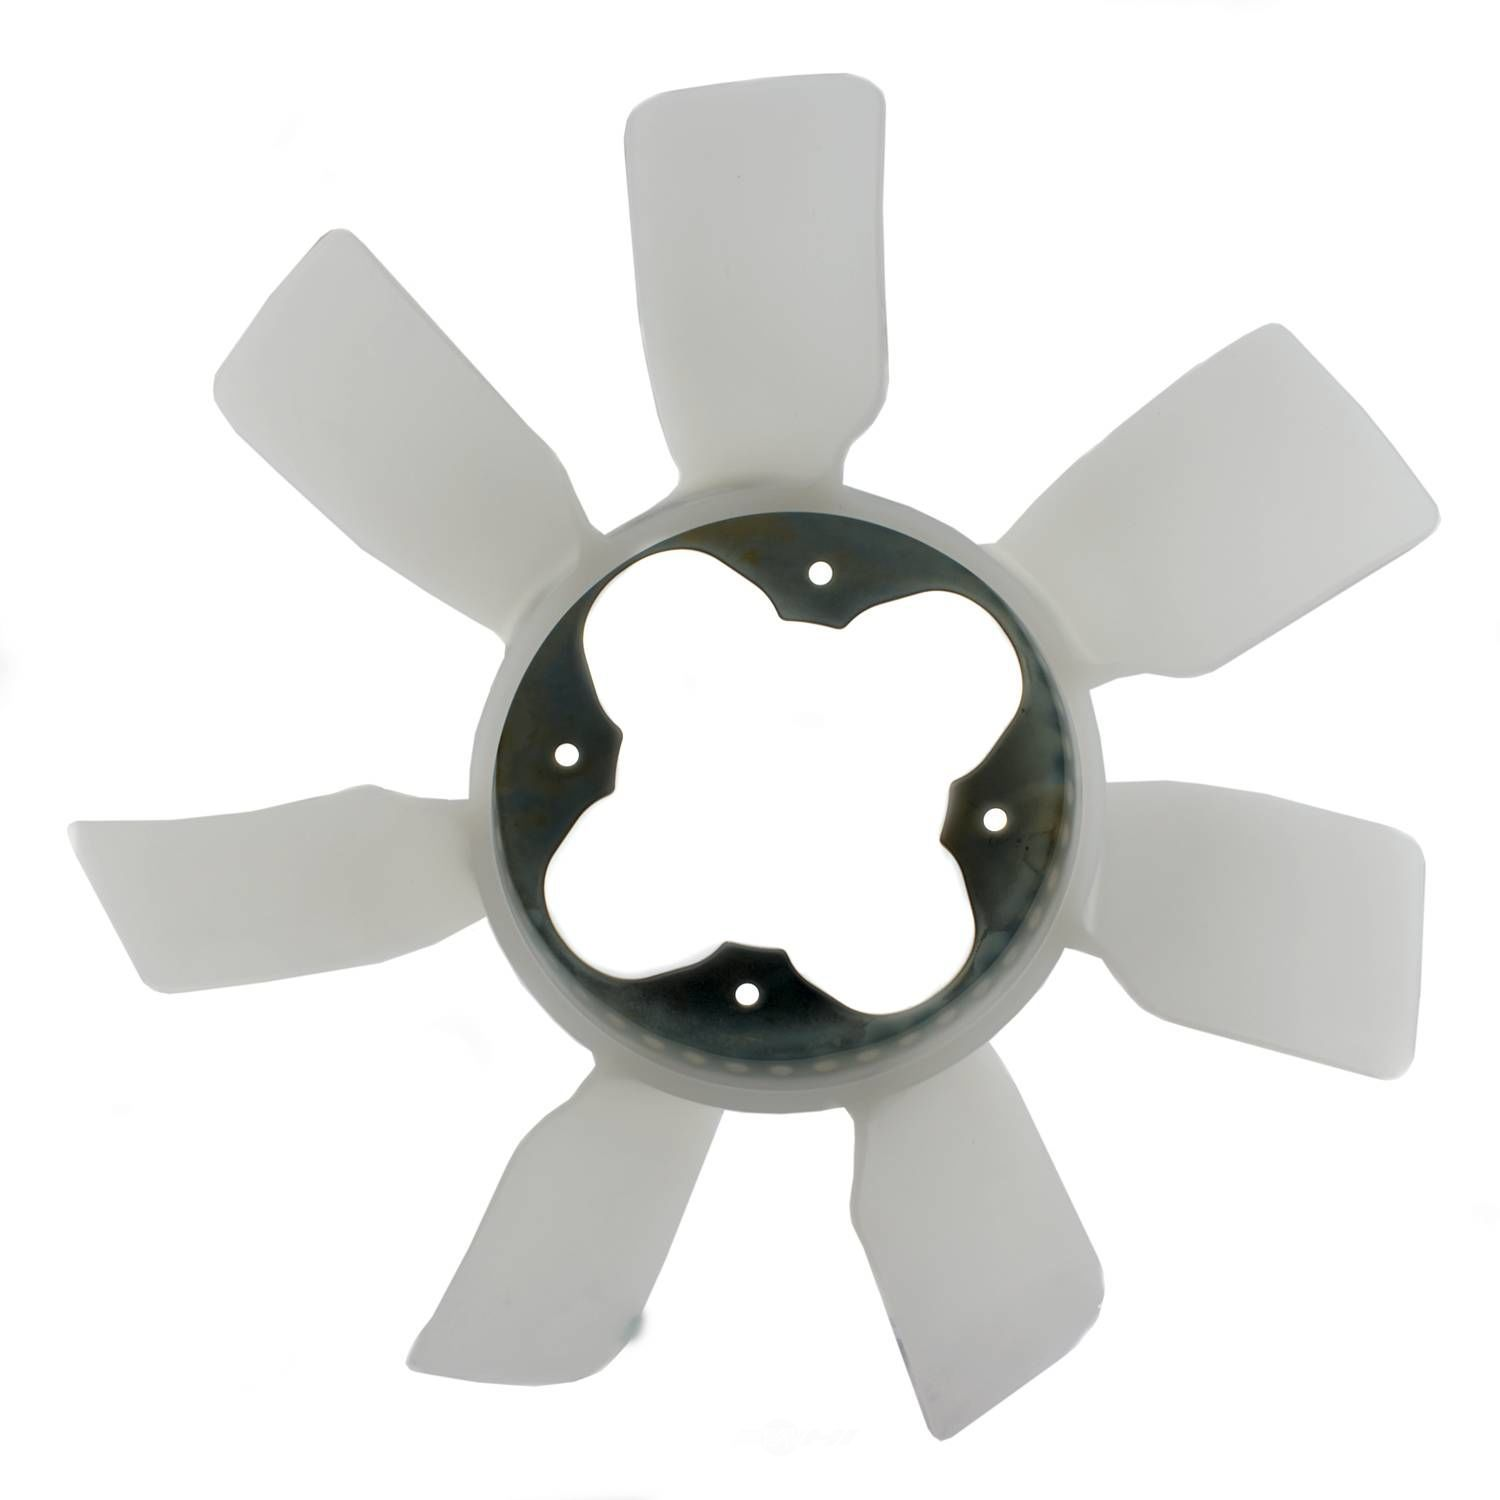 AISIN WORLD CORP. OF AMERICA - Engine Cooling Fan Blade - AIS FNT-002